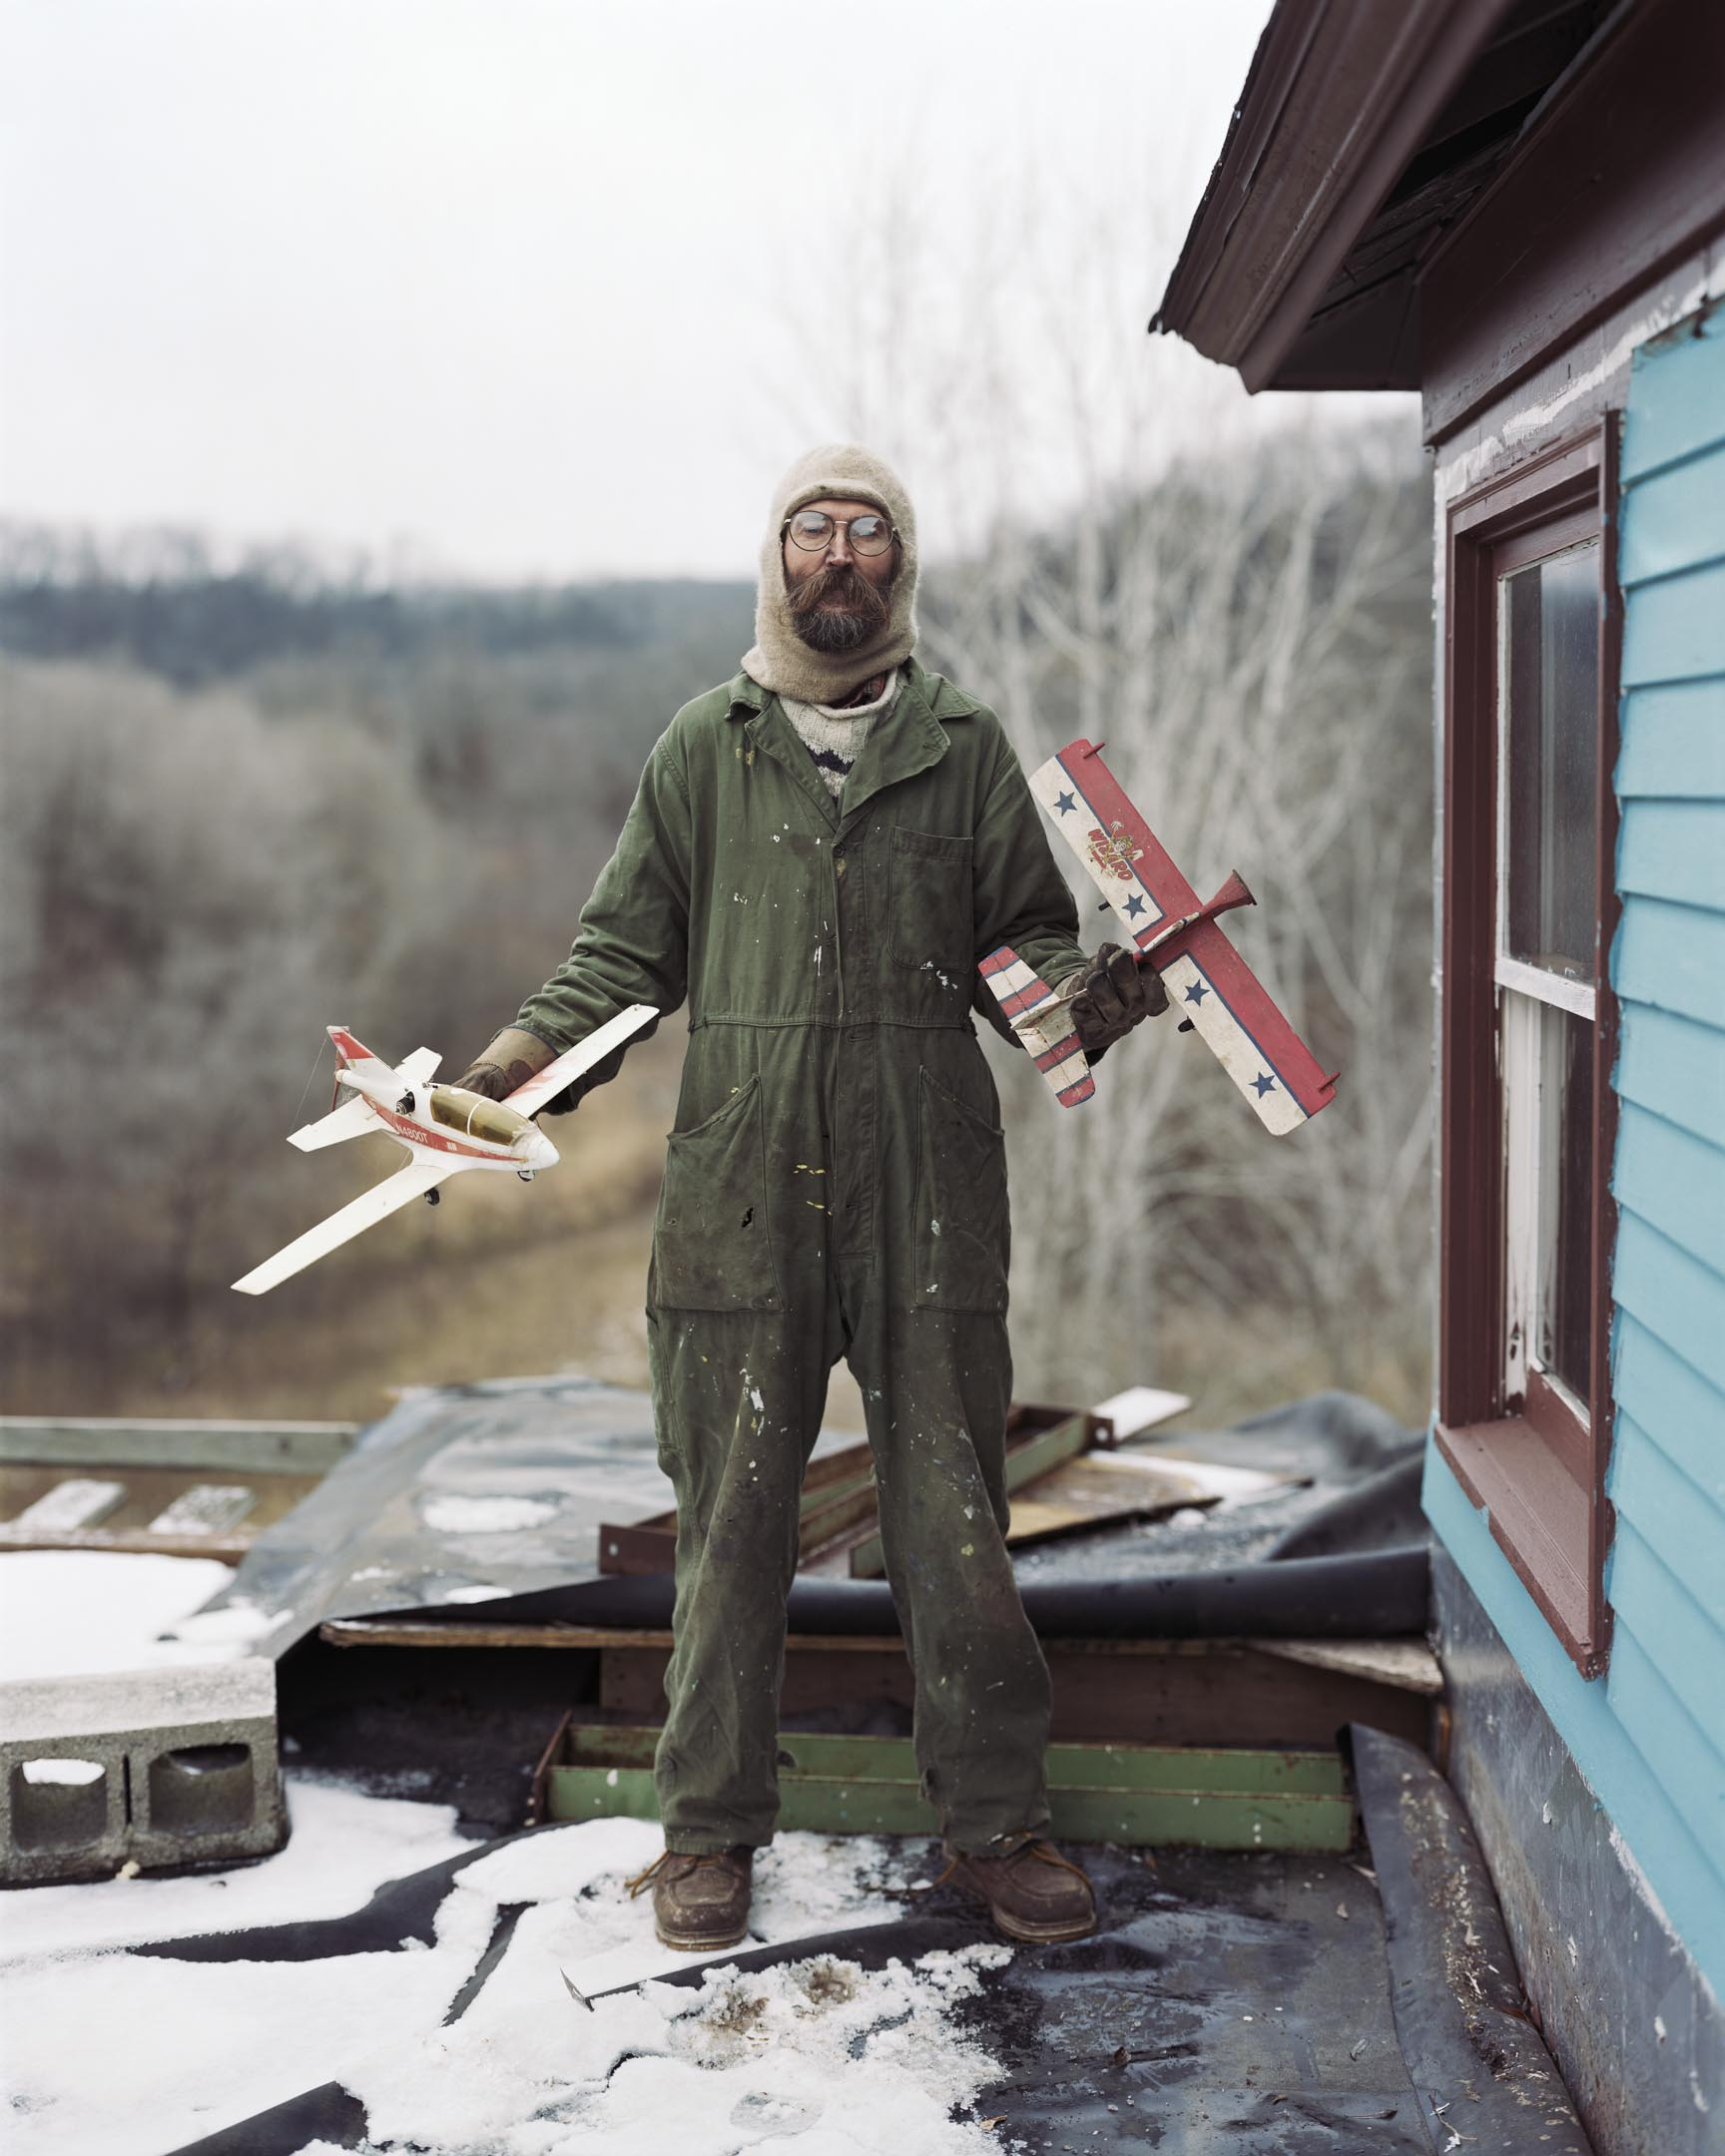 Vasa, Minnesota, USA. 《Sleeping by the Mississippi》 攝影:Alec Soth | Magnum